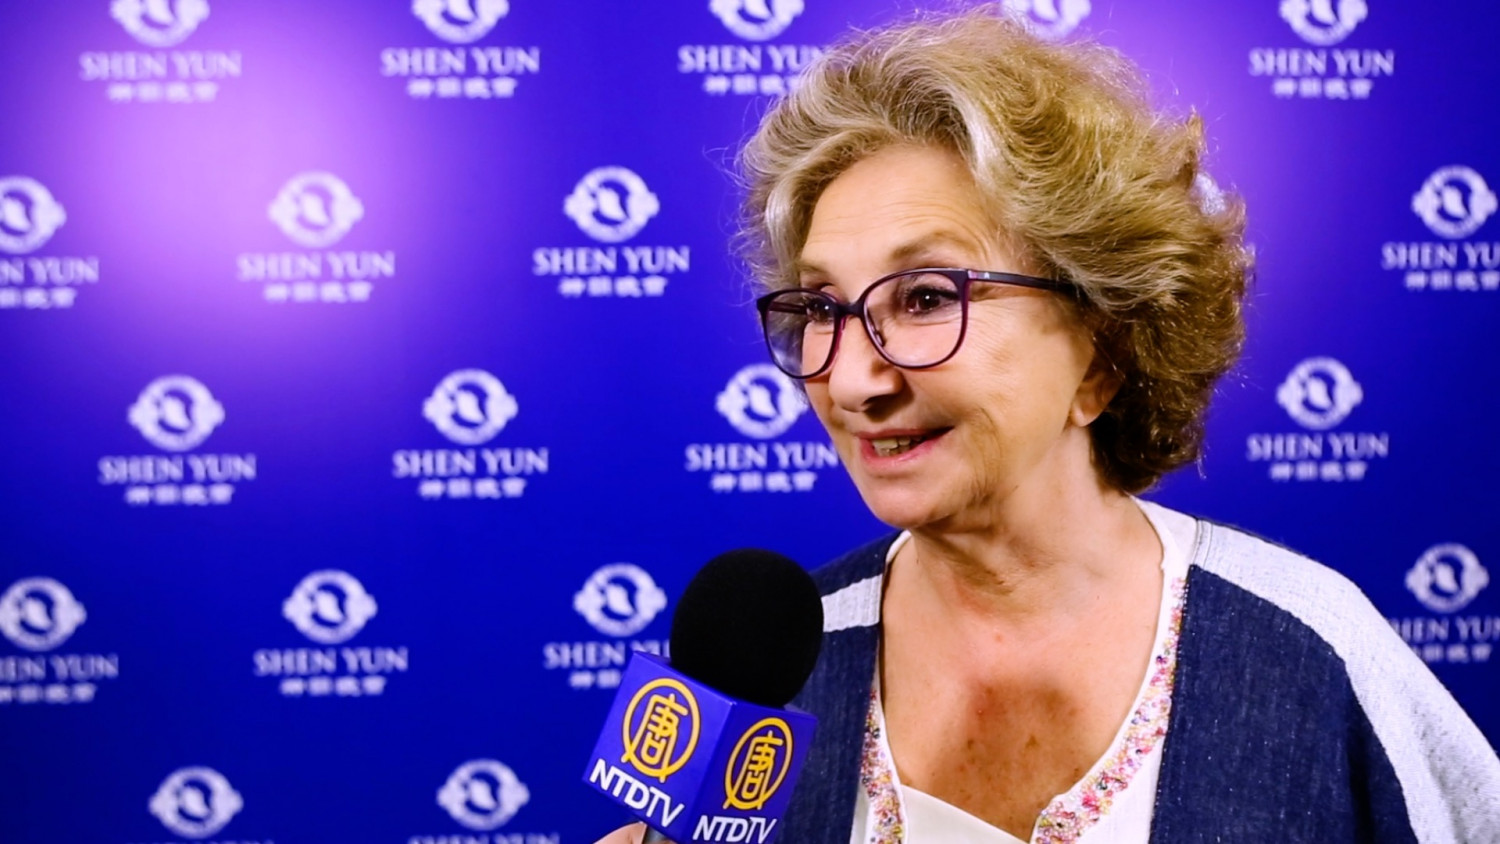 Shen Yun a 'Miracle' Says Acclaimed Argentine Actress